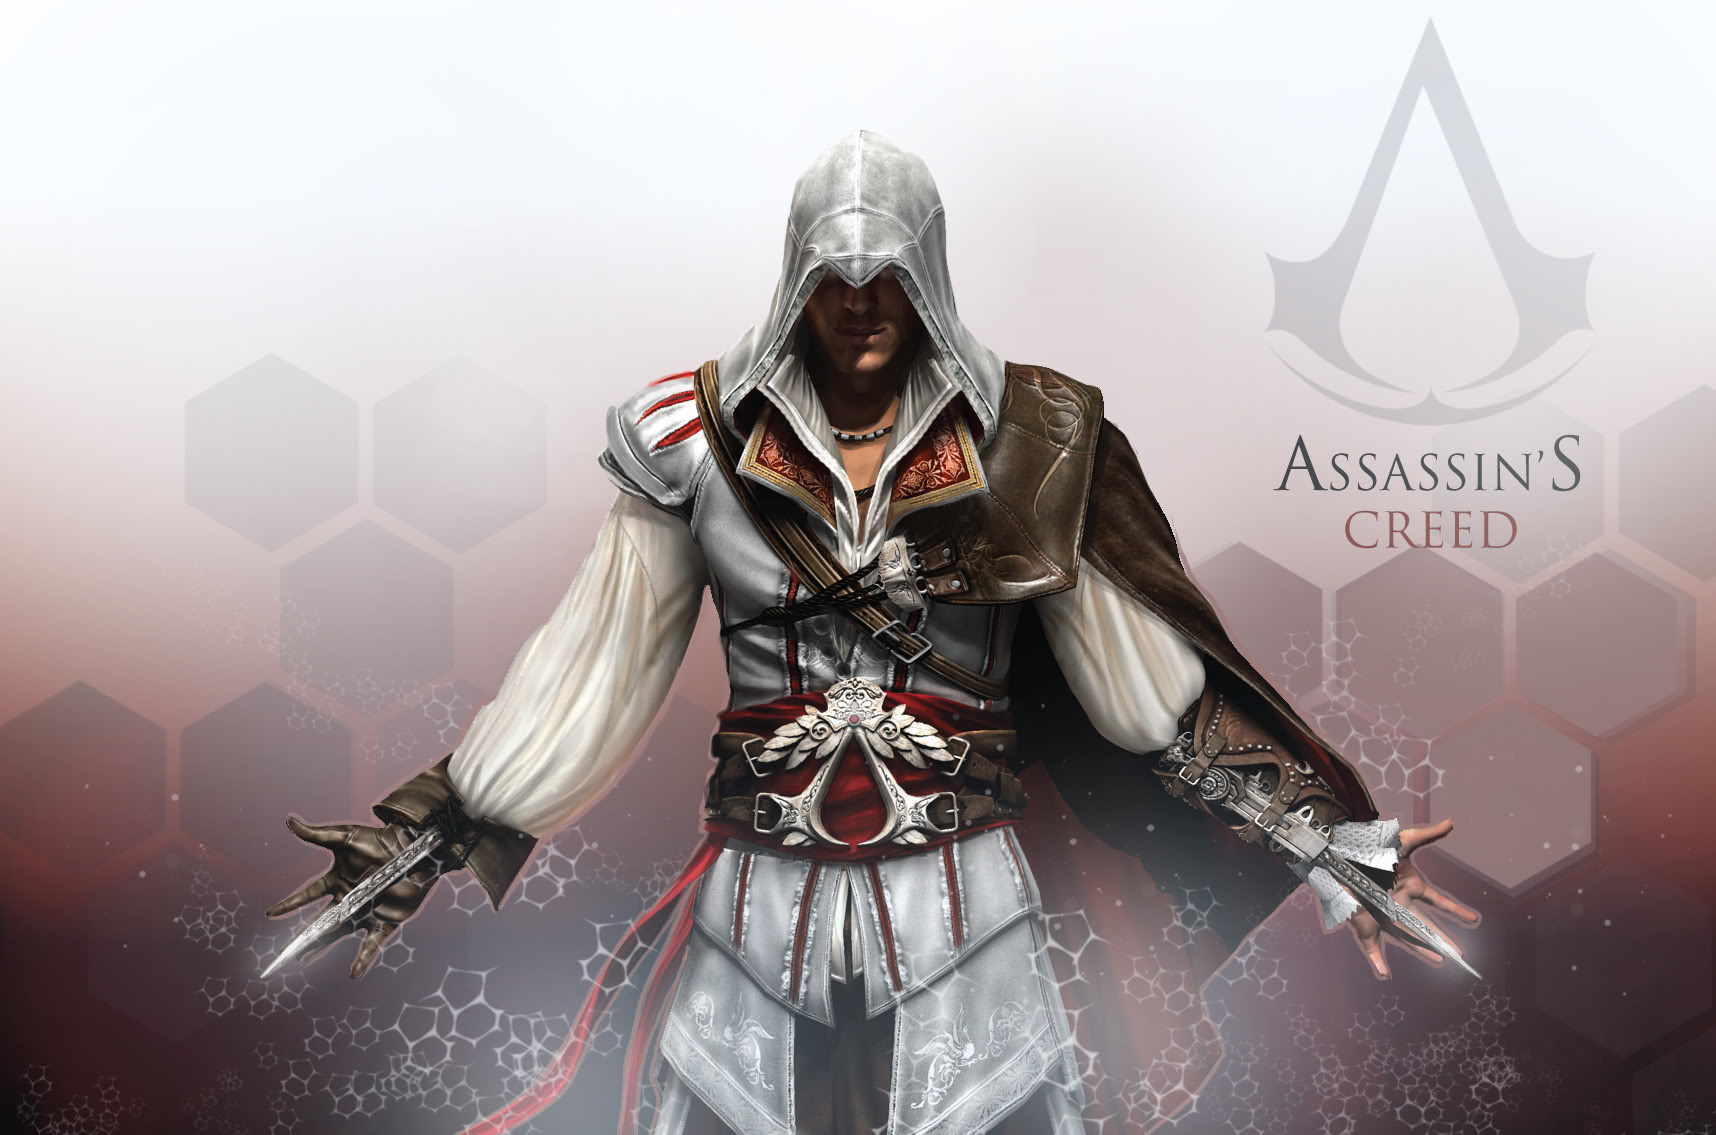 Assassin's Creed HD Wallpapers